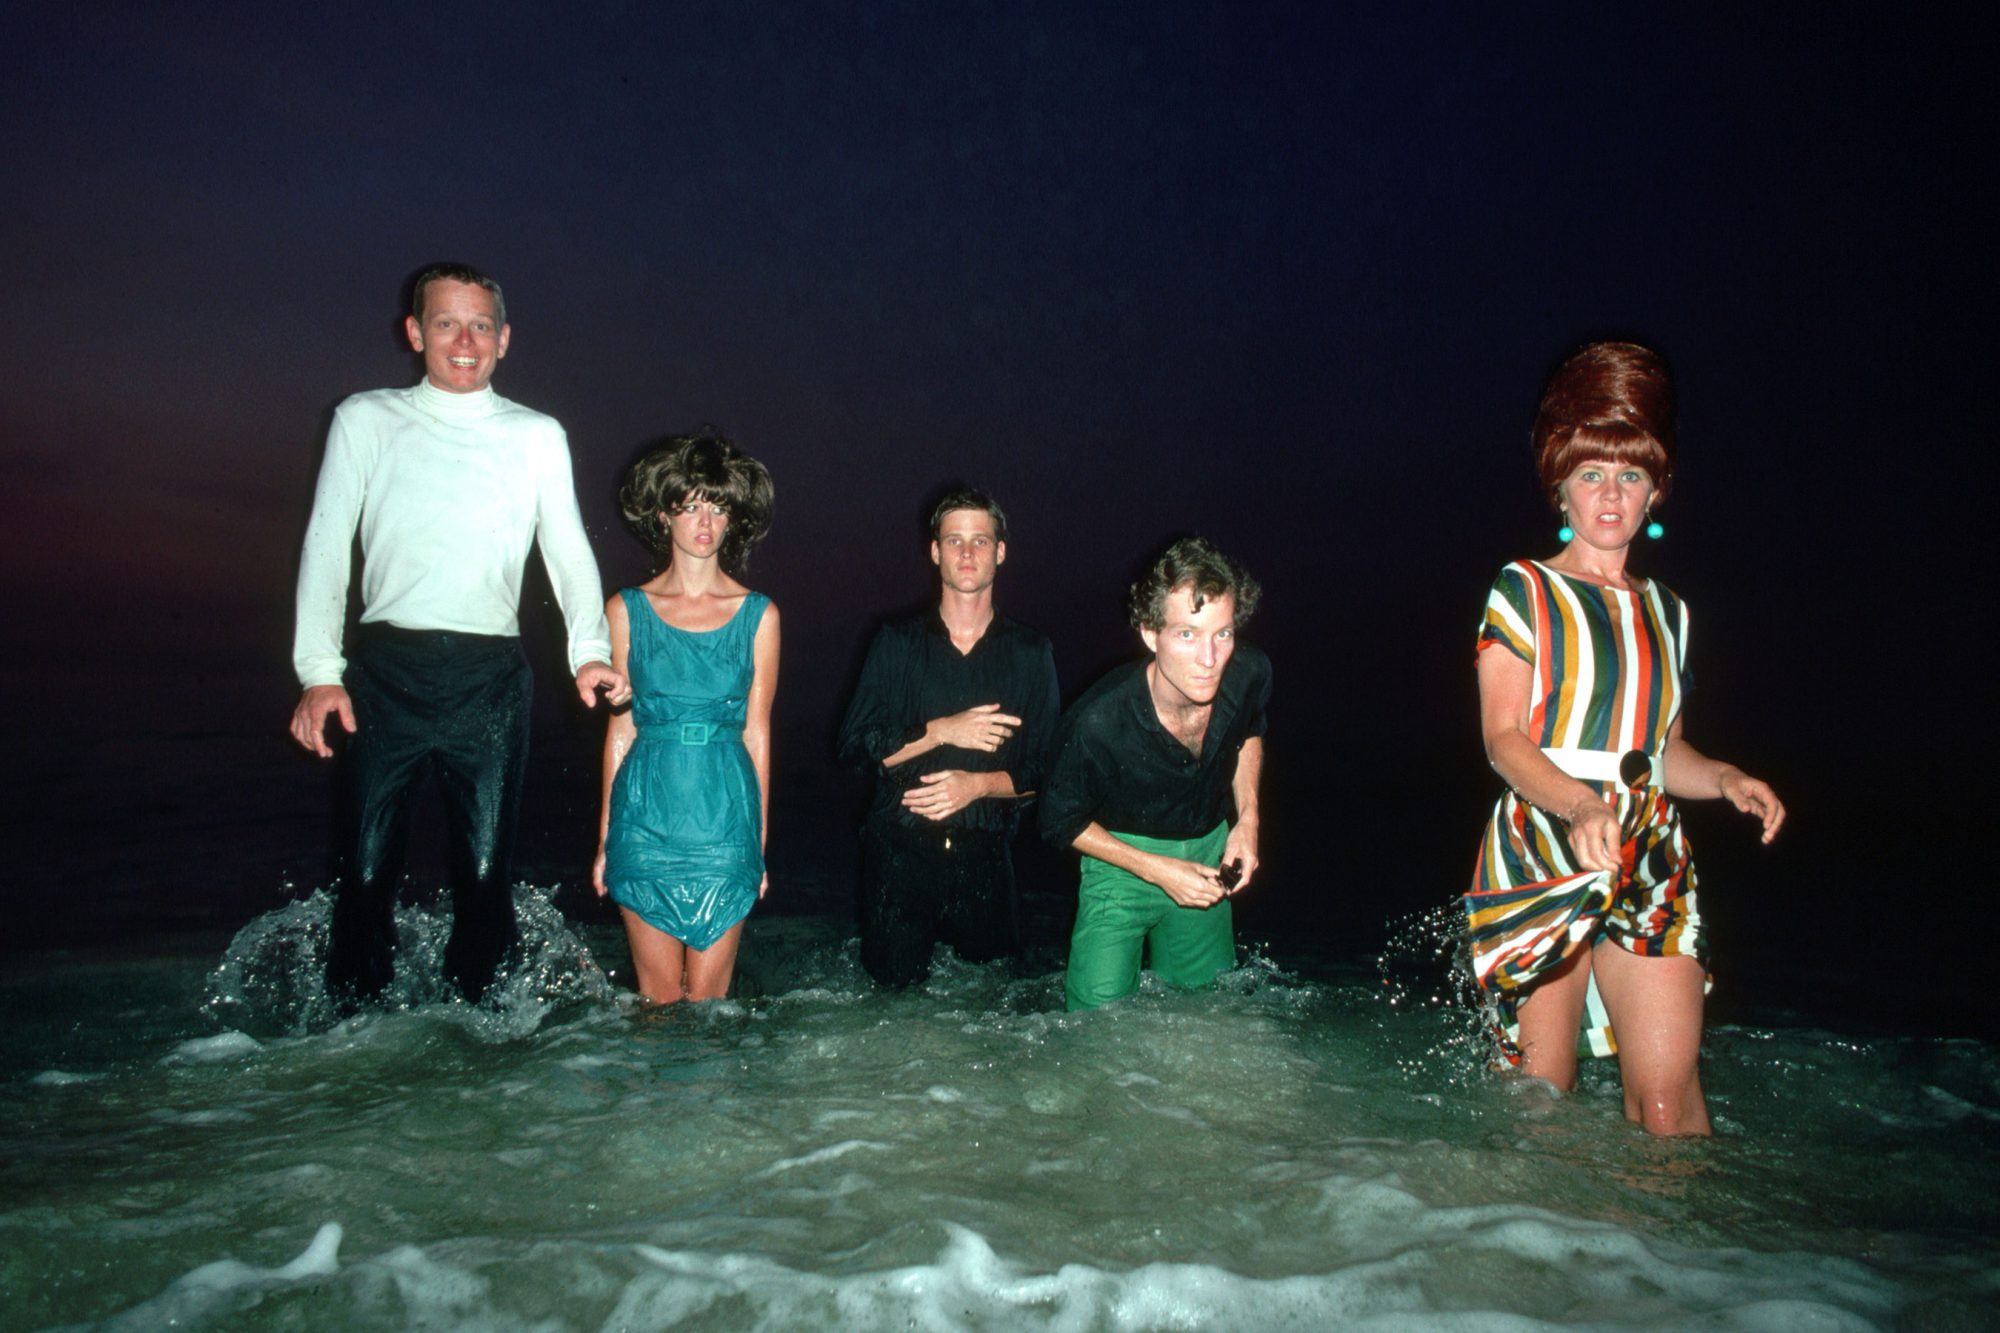 New Wave Group the B-52s